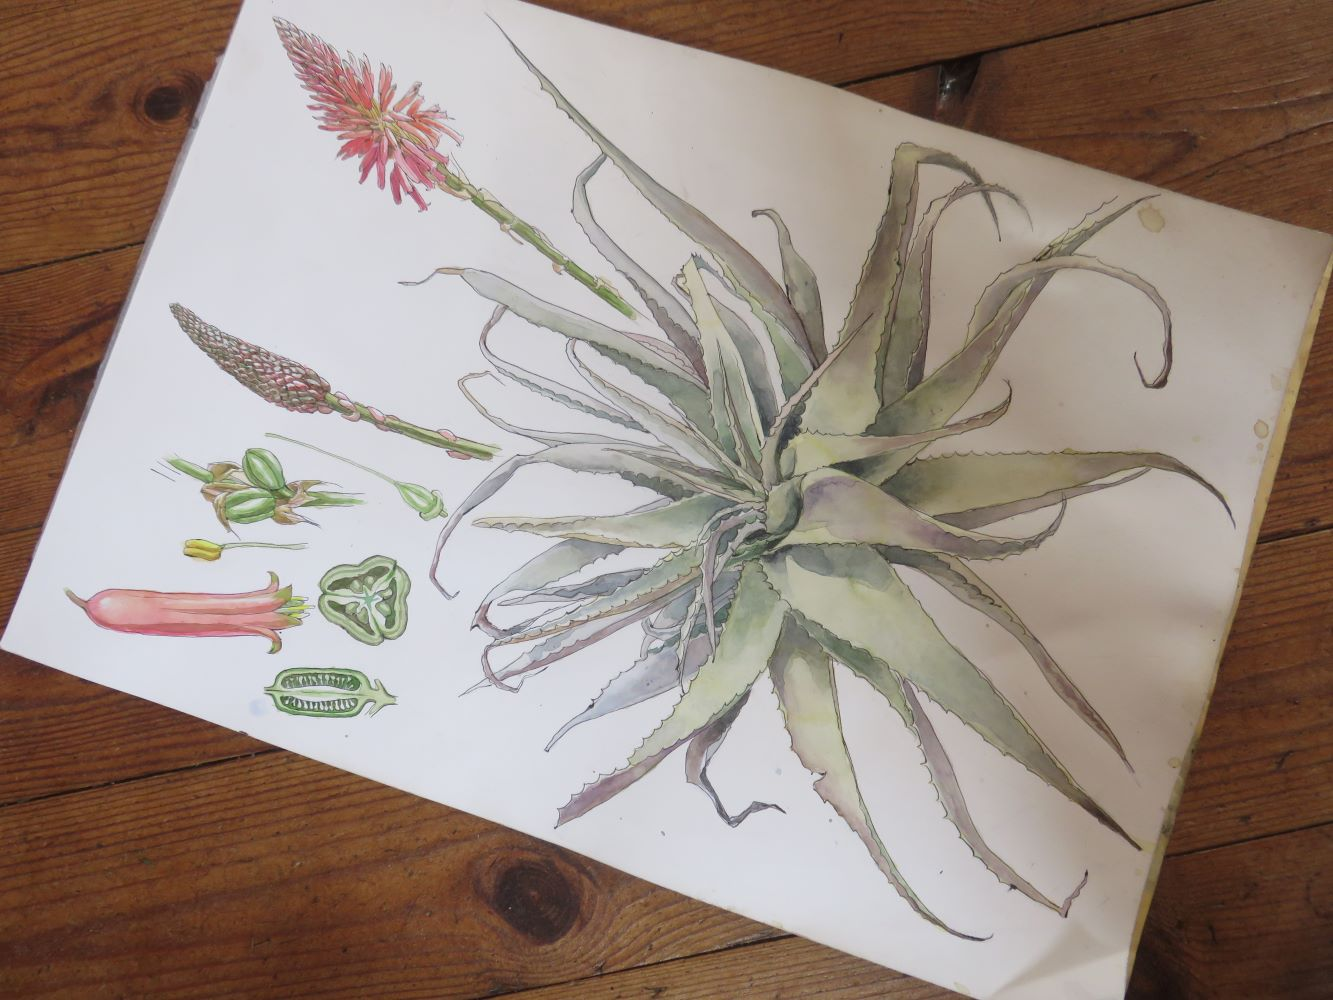 The second water color painting of Aloe arborescens